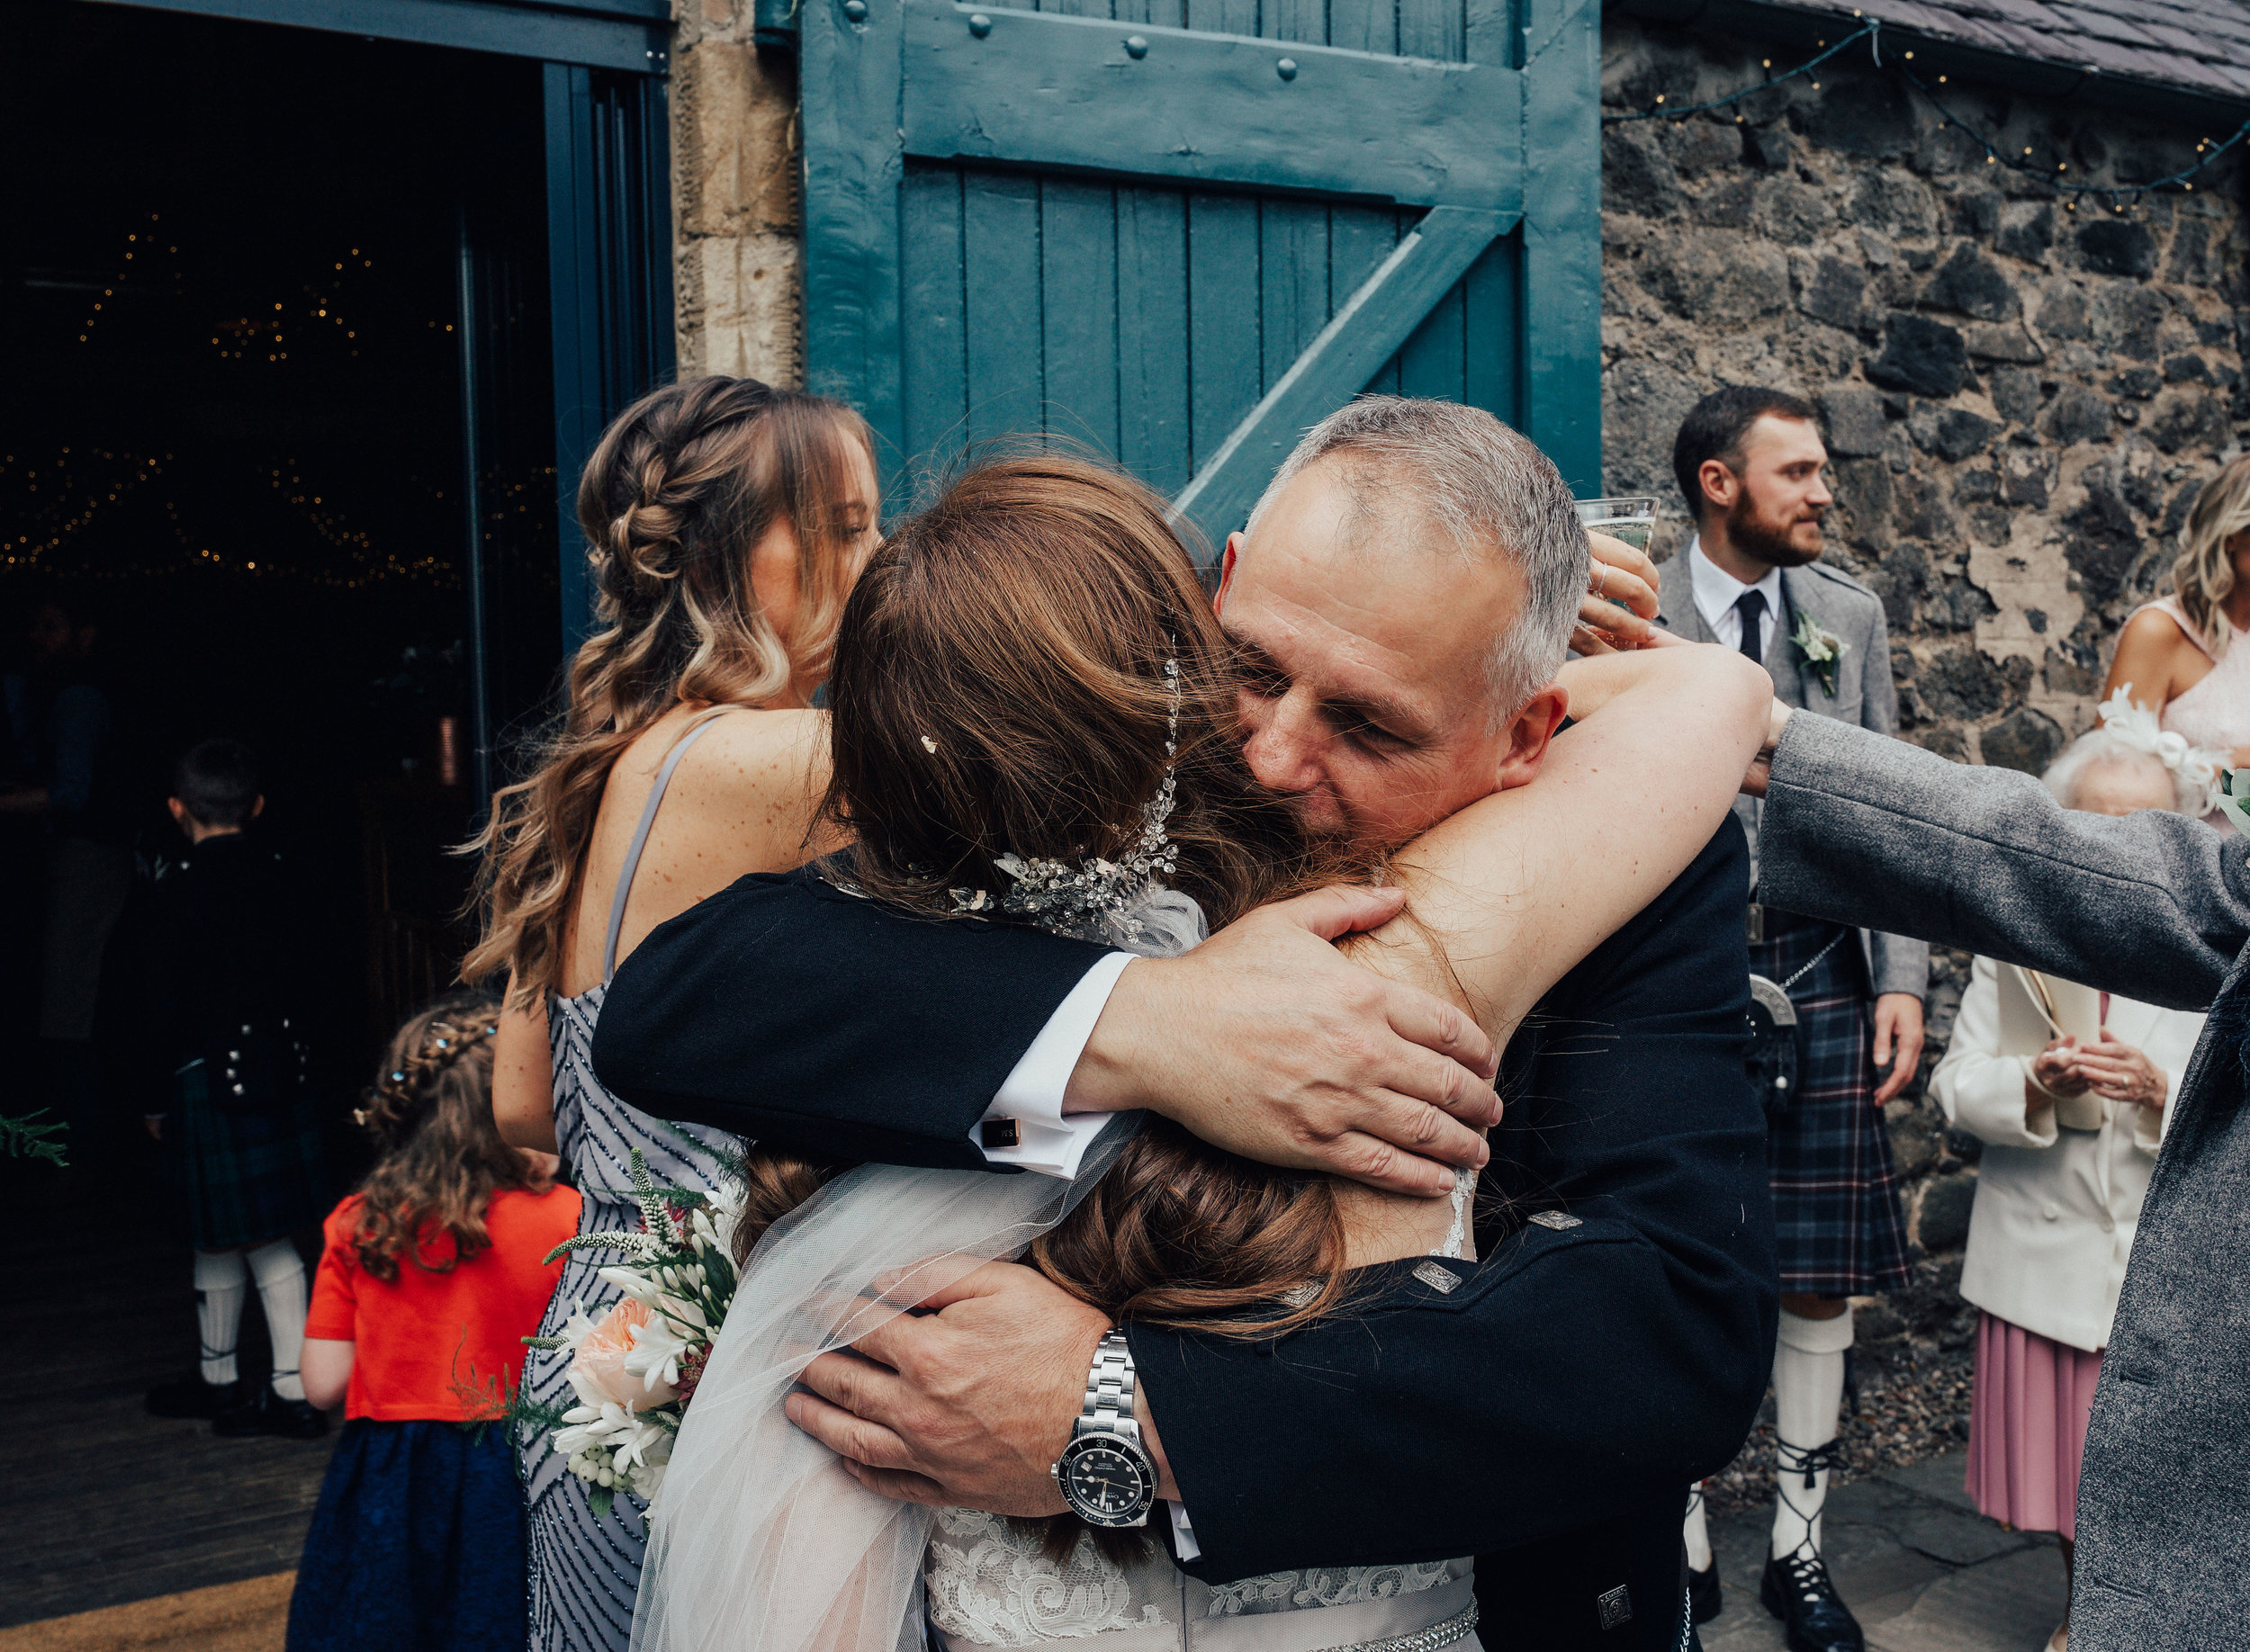 BYRE_AT_INCHYRA_WEDDING_PHOTOGRAPHER_PJ_PHILLIPS_PHOTOGRAPHY_KAYLEIGH_ANDREW_96.jpg